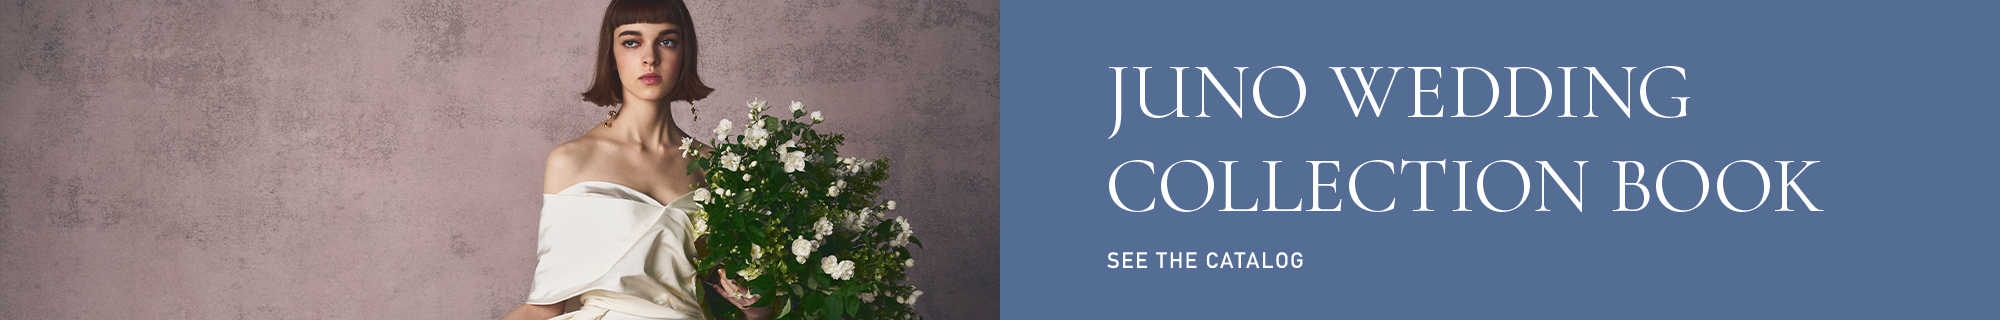 JUNO WEDDING COLLECTION CATALOG